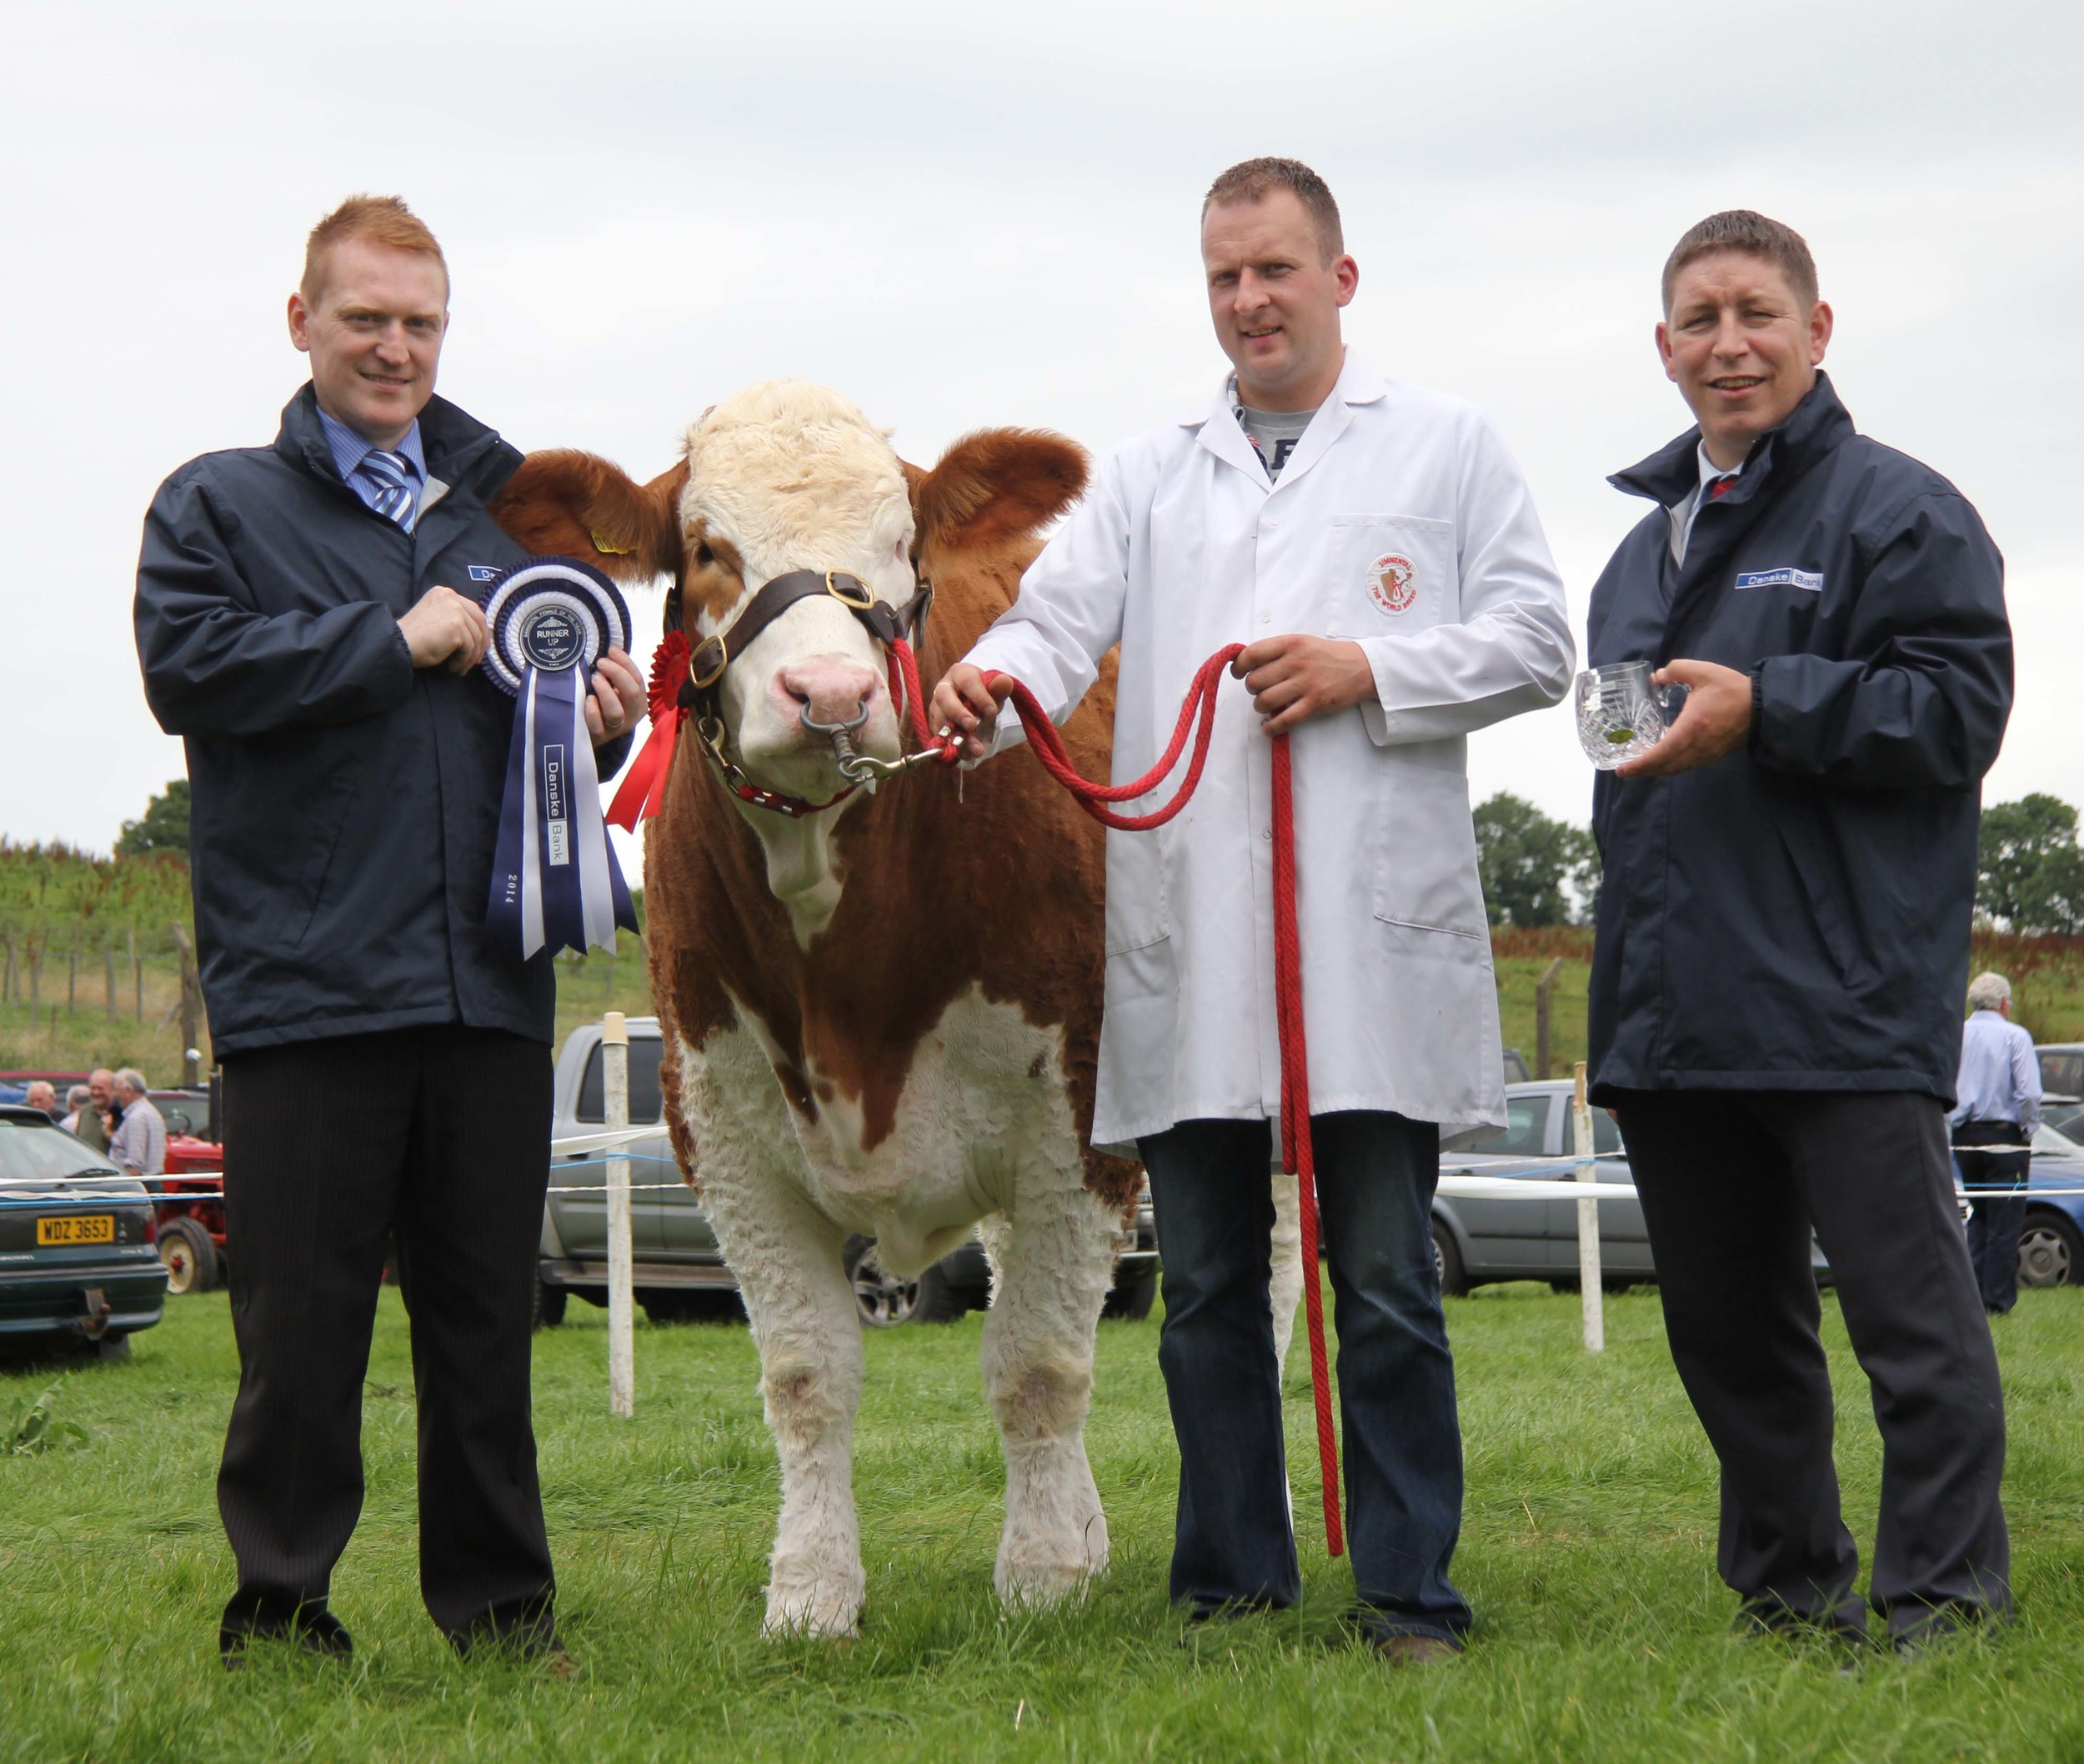 Danske Bank Reserve Simmental Female of the Year was Ranfurly Weikel 11th shown by Jonny Hazelton, Dungannon. Included are sponsors William Noble and Matthew Johnston, Danske Bank.